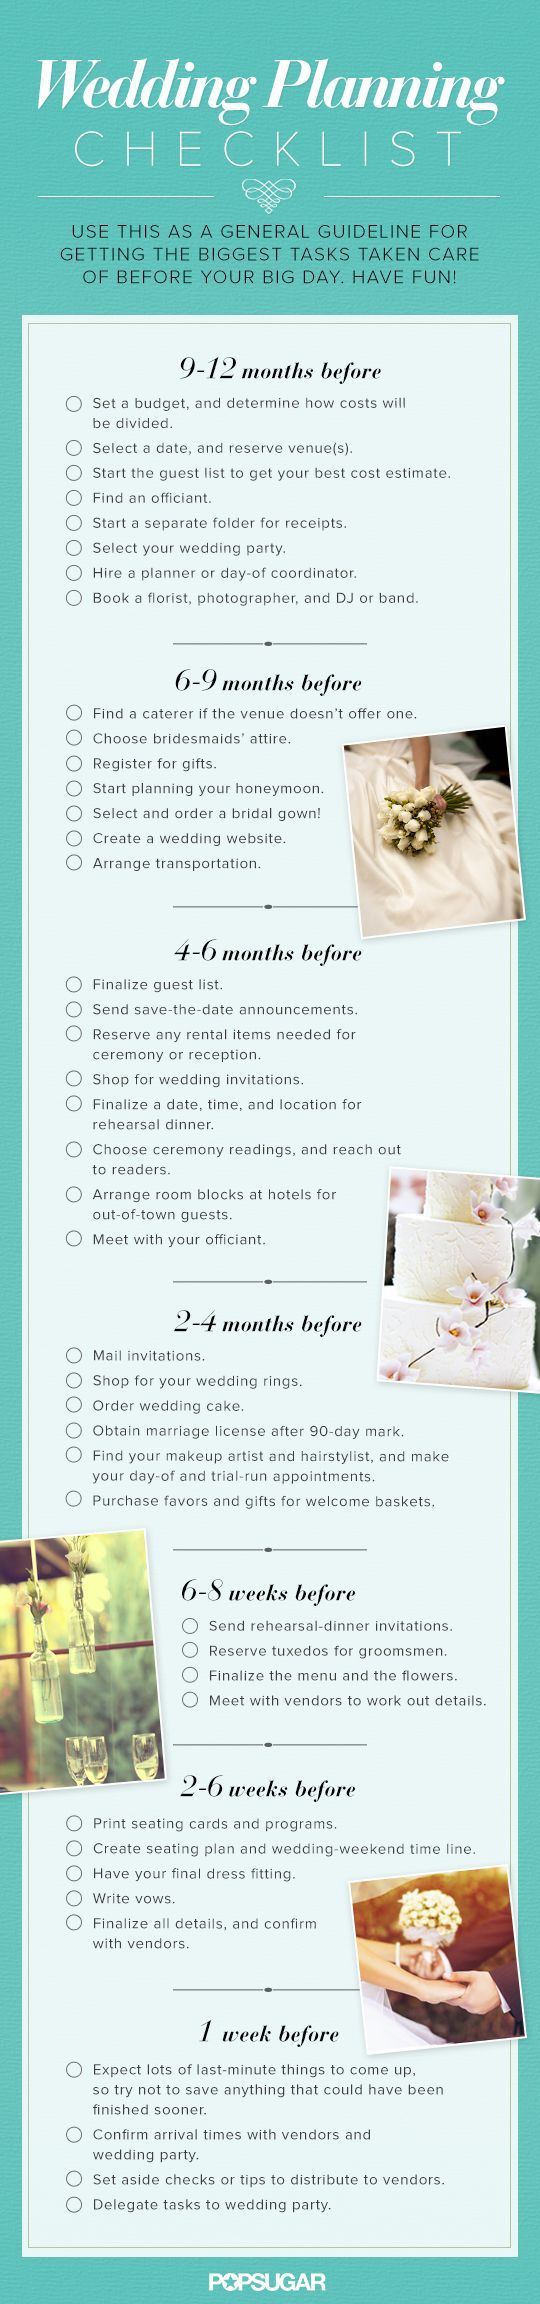 Top 5 Wedding Planning Checklists To Keep You On Track is part of Wedding planning checklist - Setting your priorities before you do any wedding planning couldn't be more important  To plan the perfect celebration, start with working out your budget, figure out where to save and where to splurge based on your top priorities  Use these 5 super useful wedding planning checklists to help you get started and organized! 1 ) Once you're engaged, …